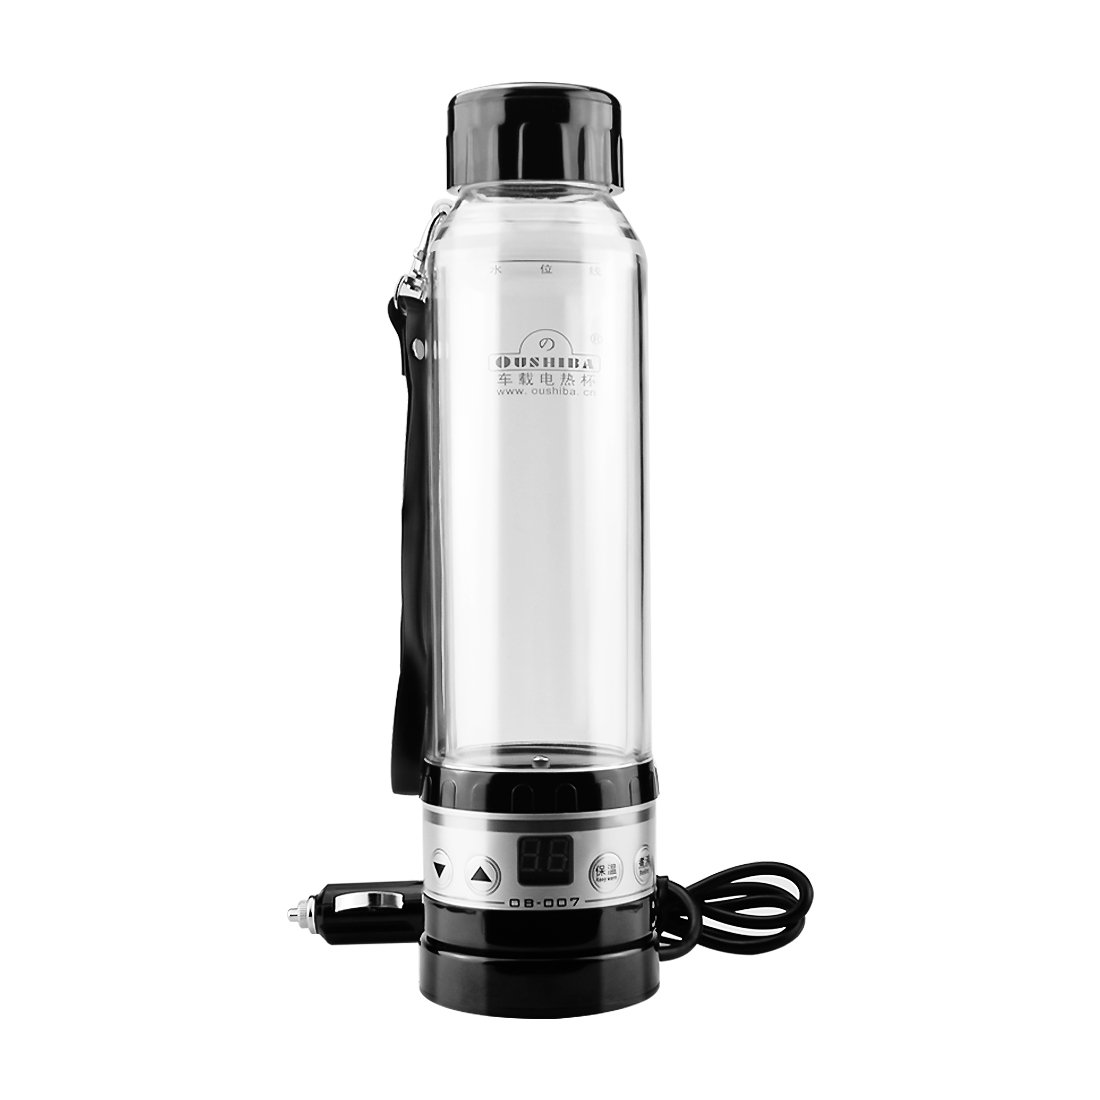 CarBoss Car Electric Kettle Heating Cup 12V 24V Volt Smart Auto Travel Mug Water Boiling Cofee Milk Tea Heater Warmer Thermos Bottle 280ML Cigarette Lighter Charger Black Gold Silver (Black)